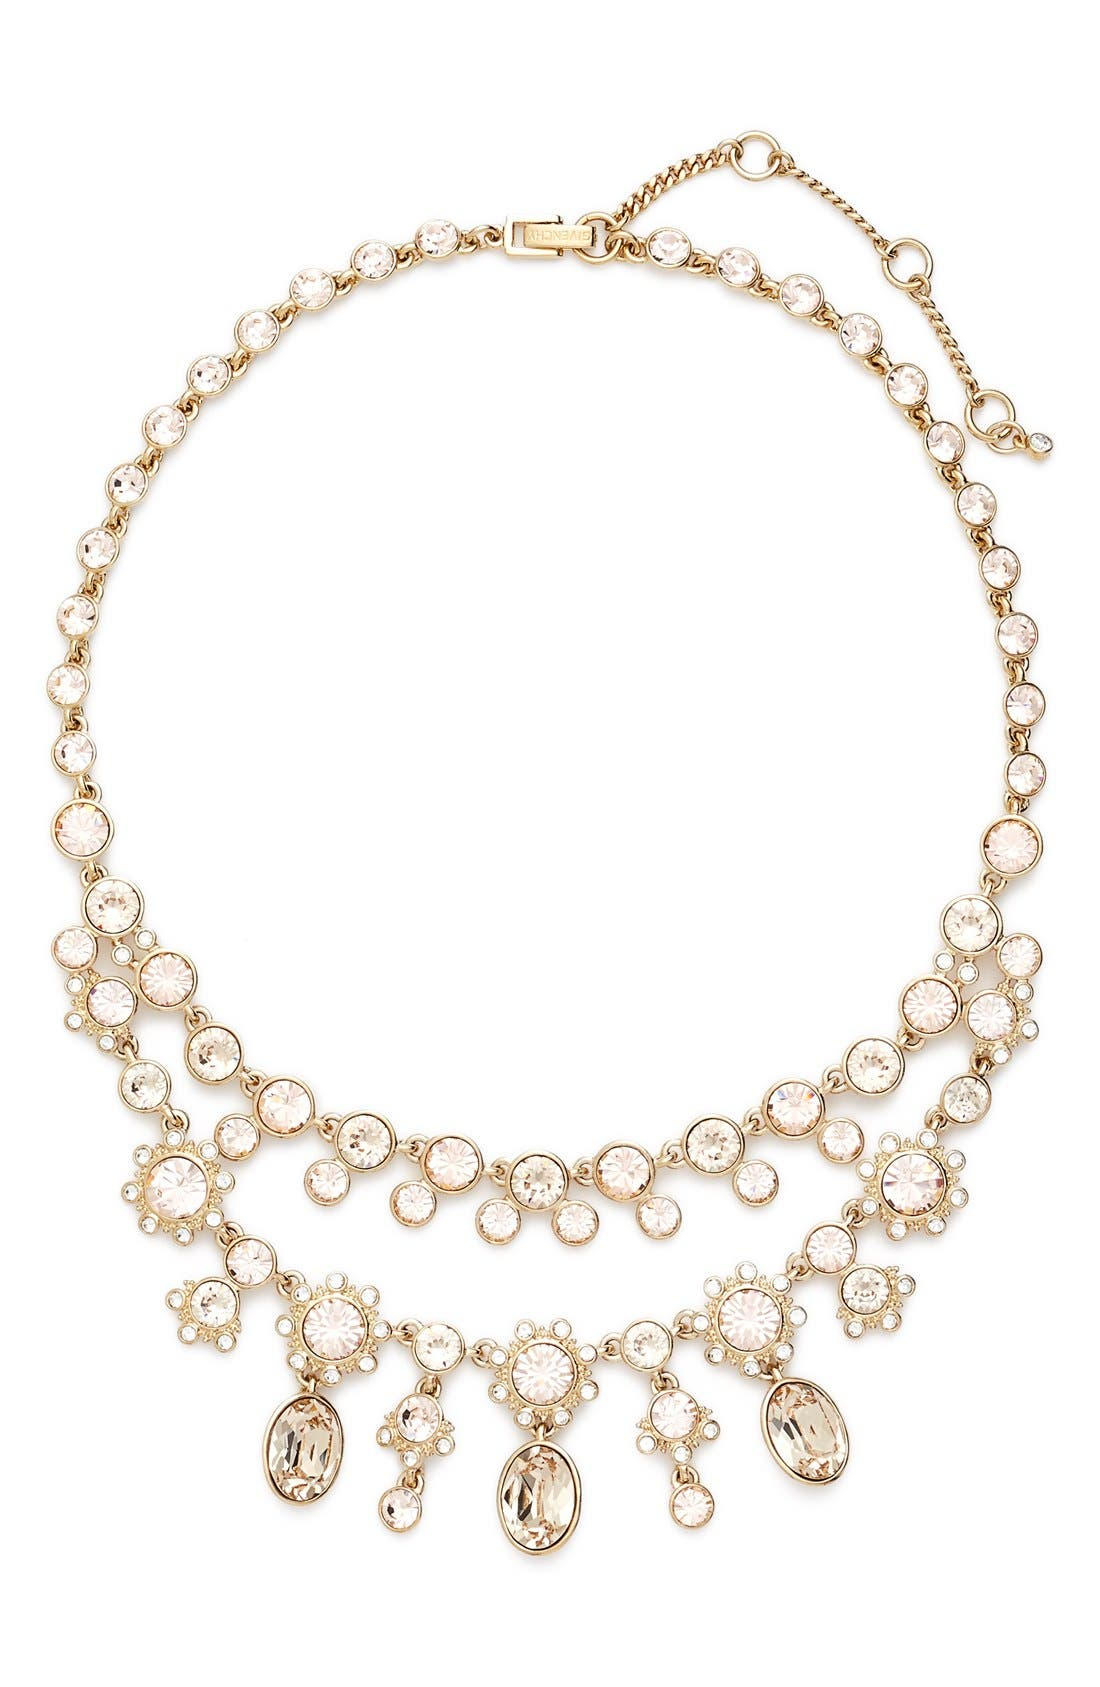 Main Image - Givenchy 'Drama' Collar Necklace